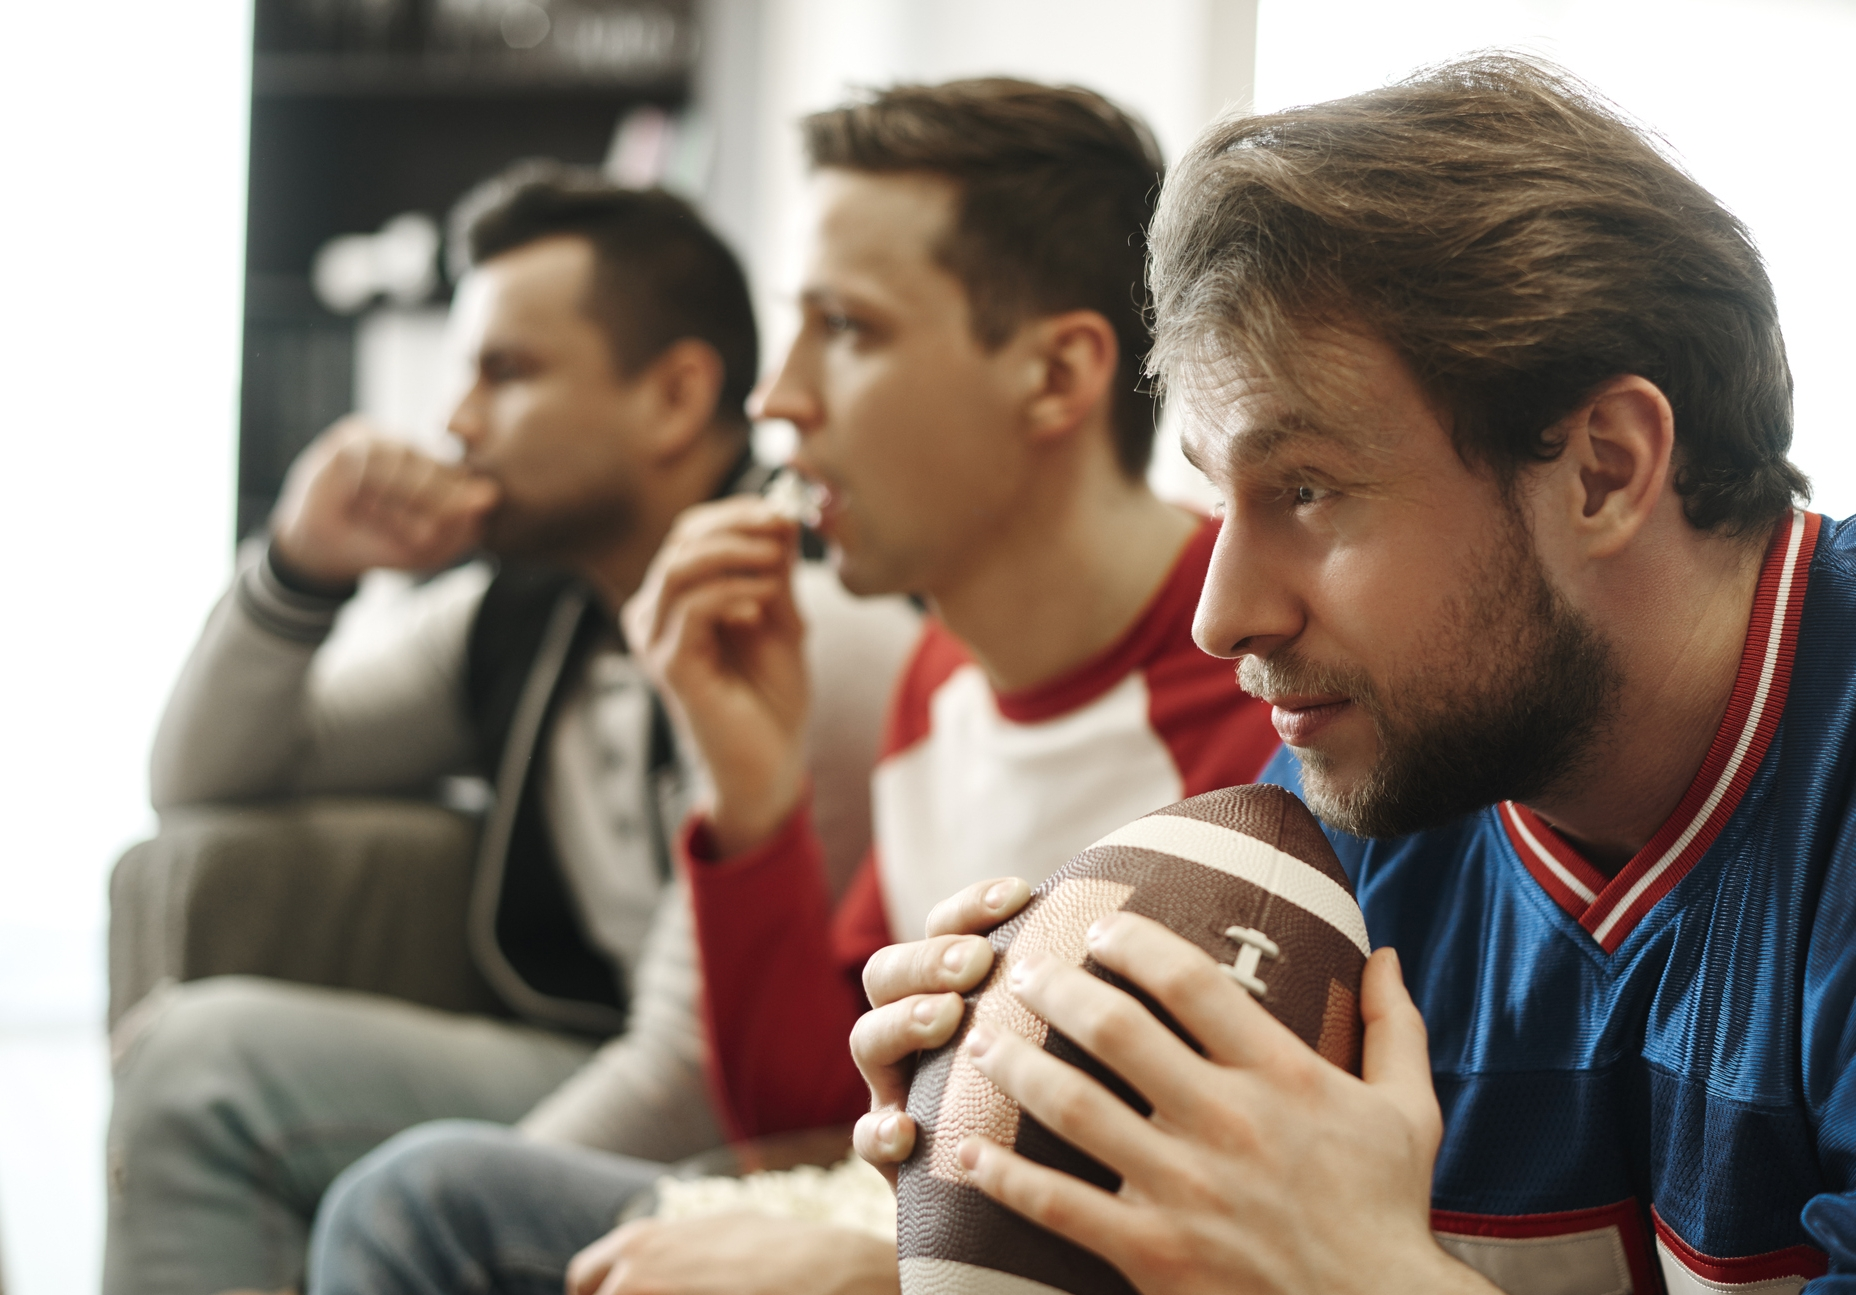 Focused-watching-football-game-at-home-910510008_2122x1416.jpeg